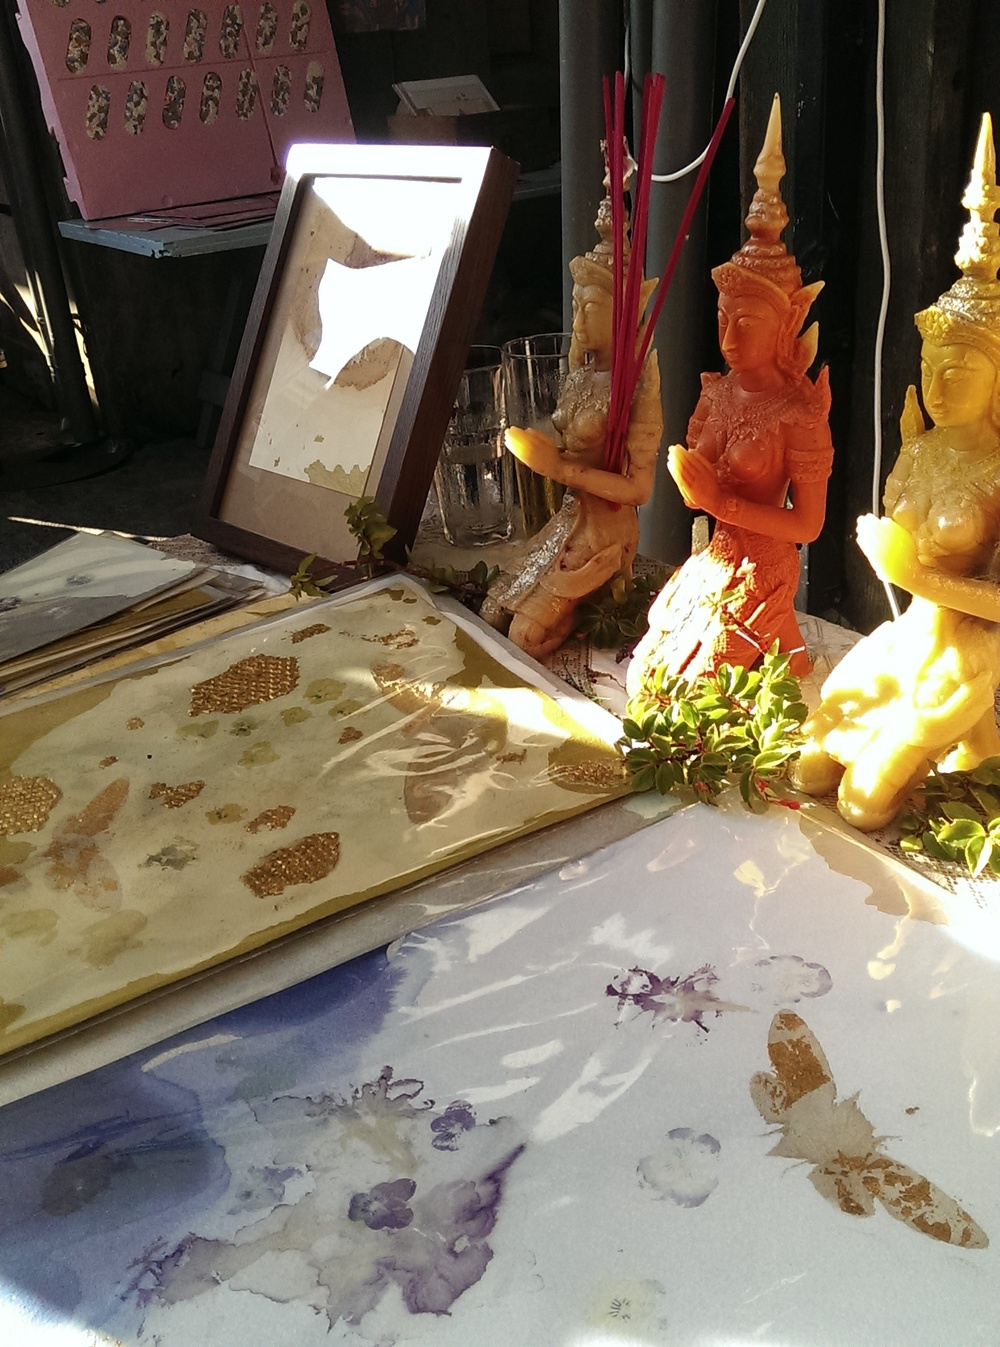 Tiffany Singh's wax sculptures and handmade natural prints in the evening sunshine